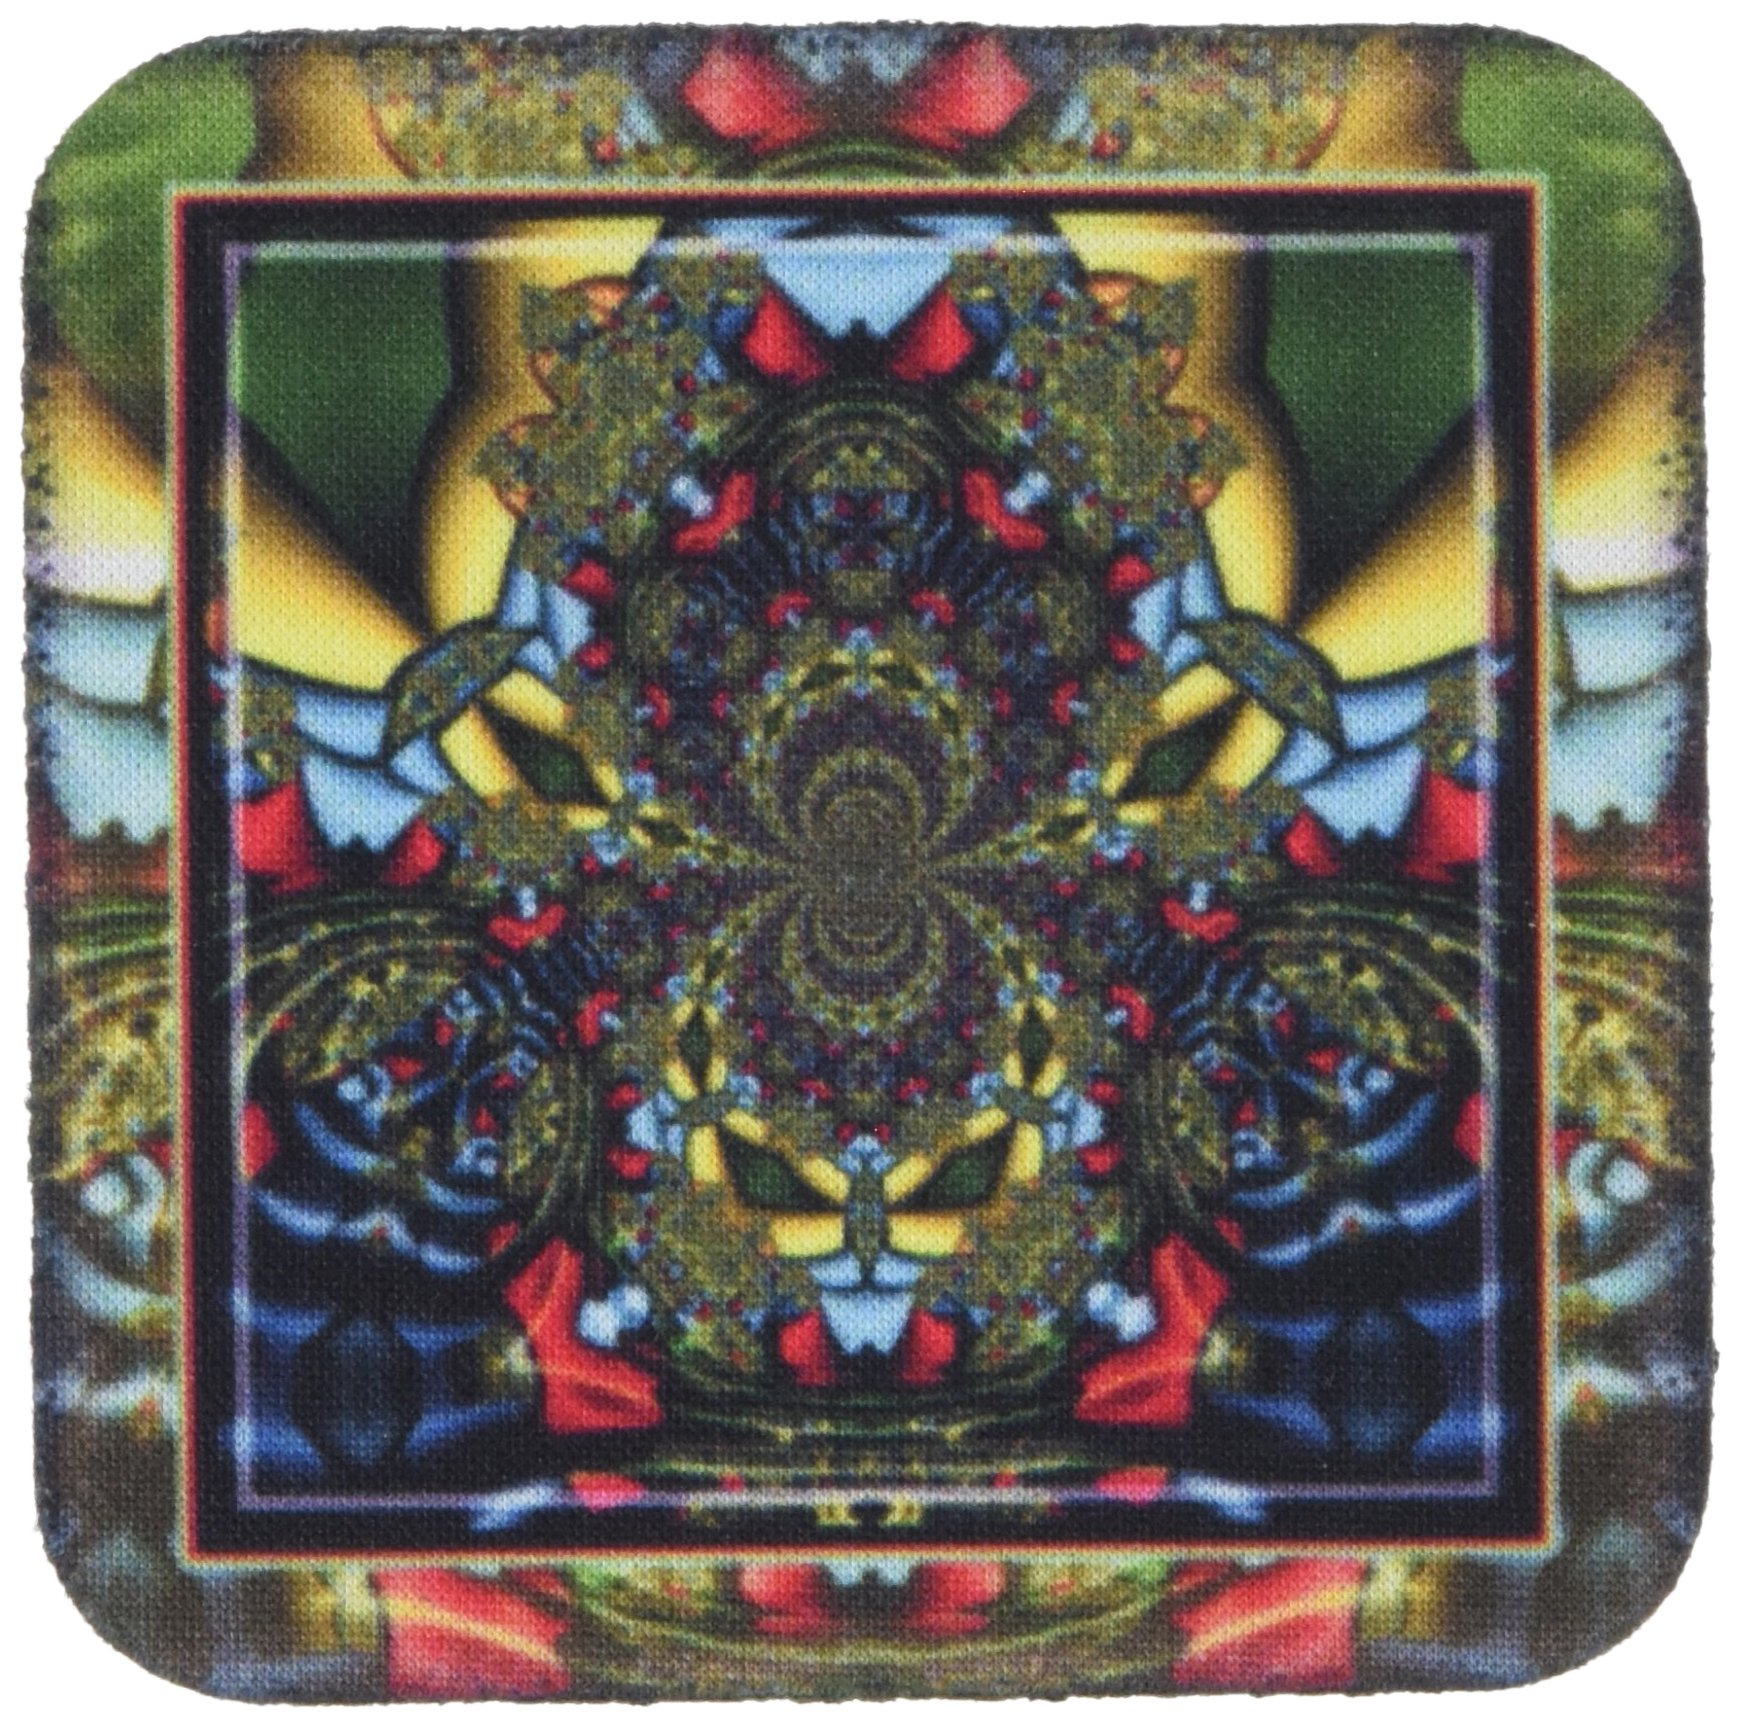 3dRose cst_24841_1 Psychedellica 2 Hippie Flowerpower Retro Fractal Psychedellic Red Yellow Blue Retro Oriental India-Soft Coasters, Set of 4